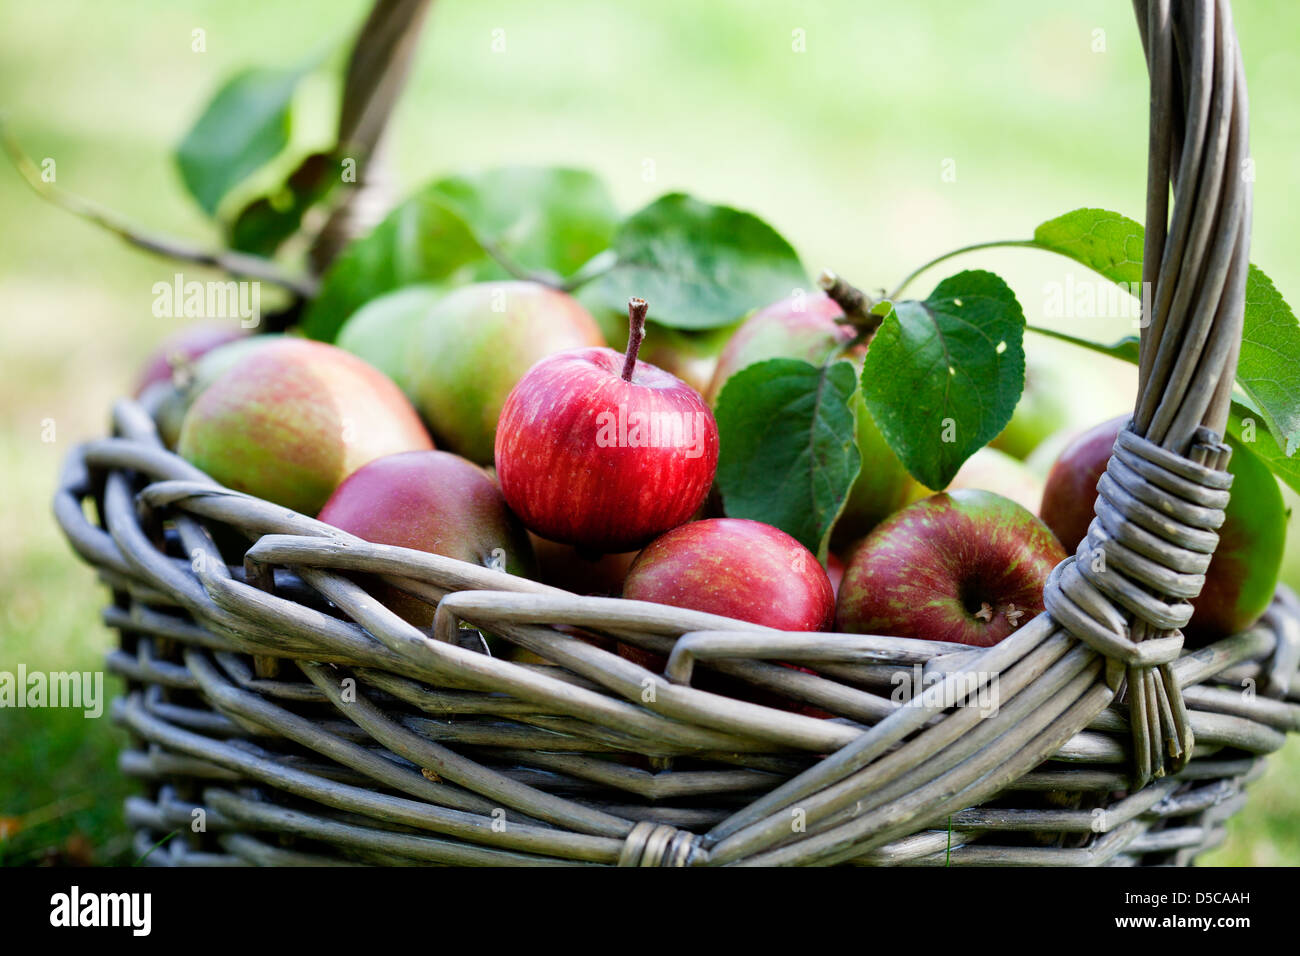 Fresh and colorful apples in basket, selective focus - Stock Image